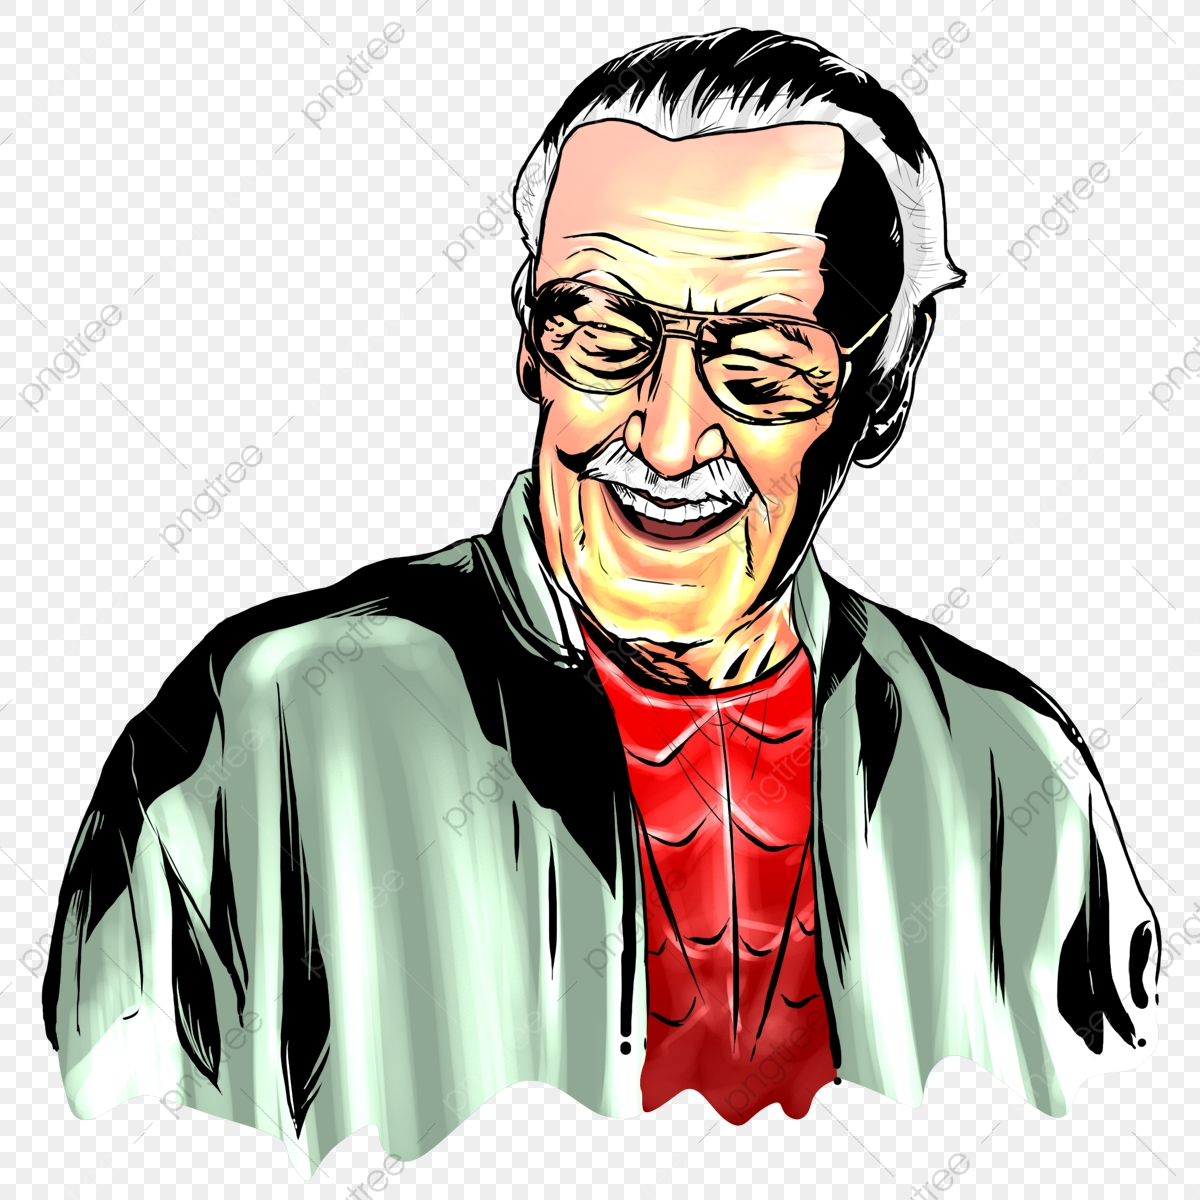 Stan Lee Sketch, Stan Lee, Sketch, Infographic PNG.